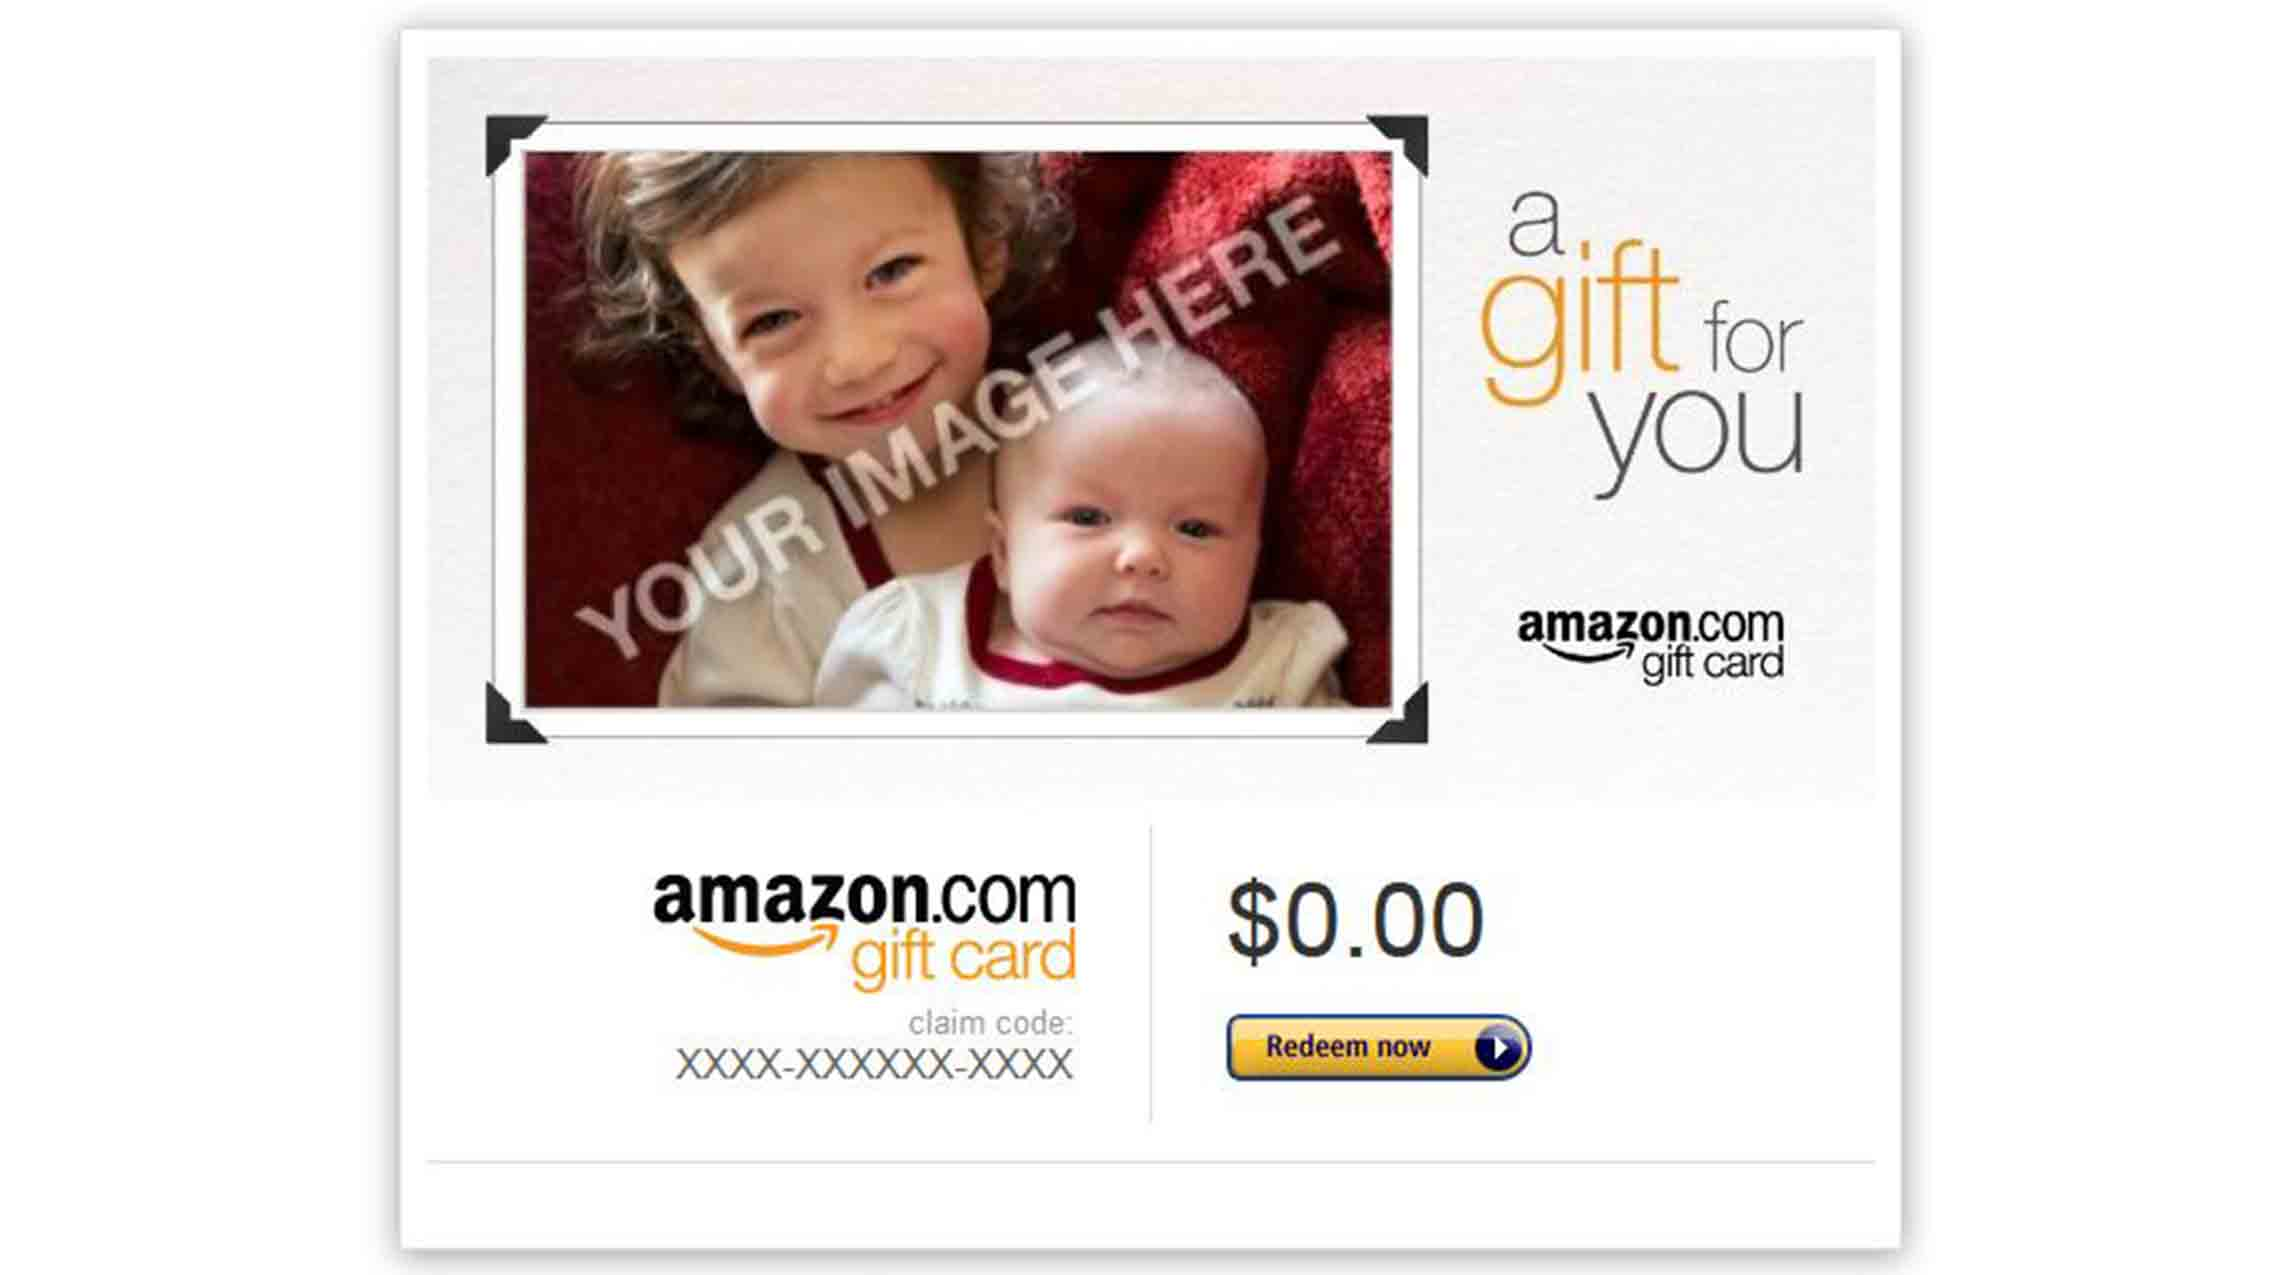 egift card from amazon